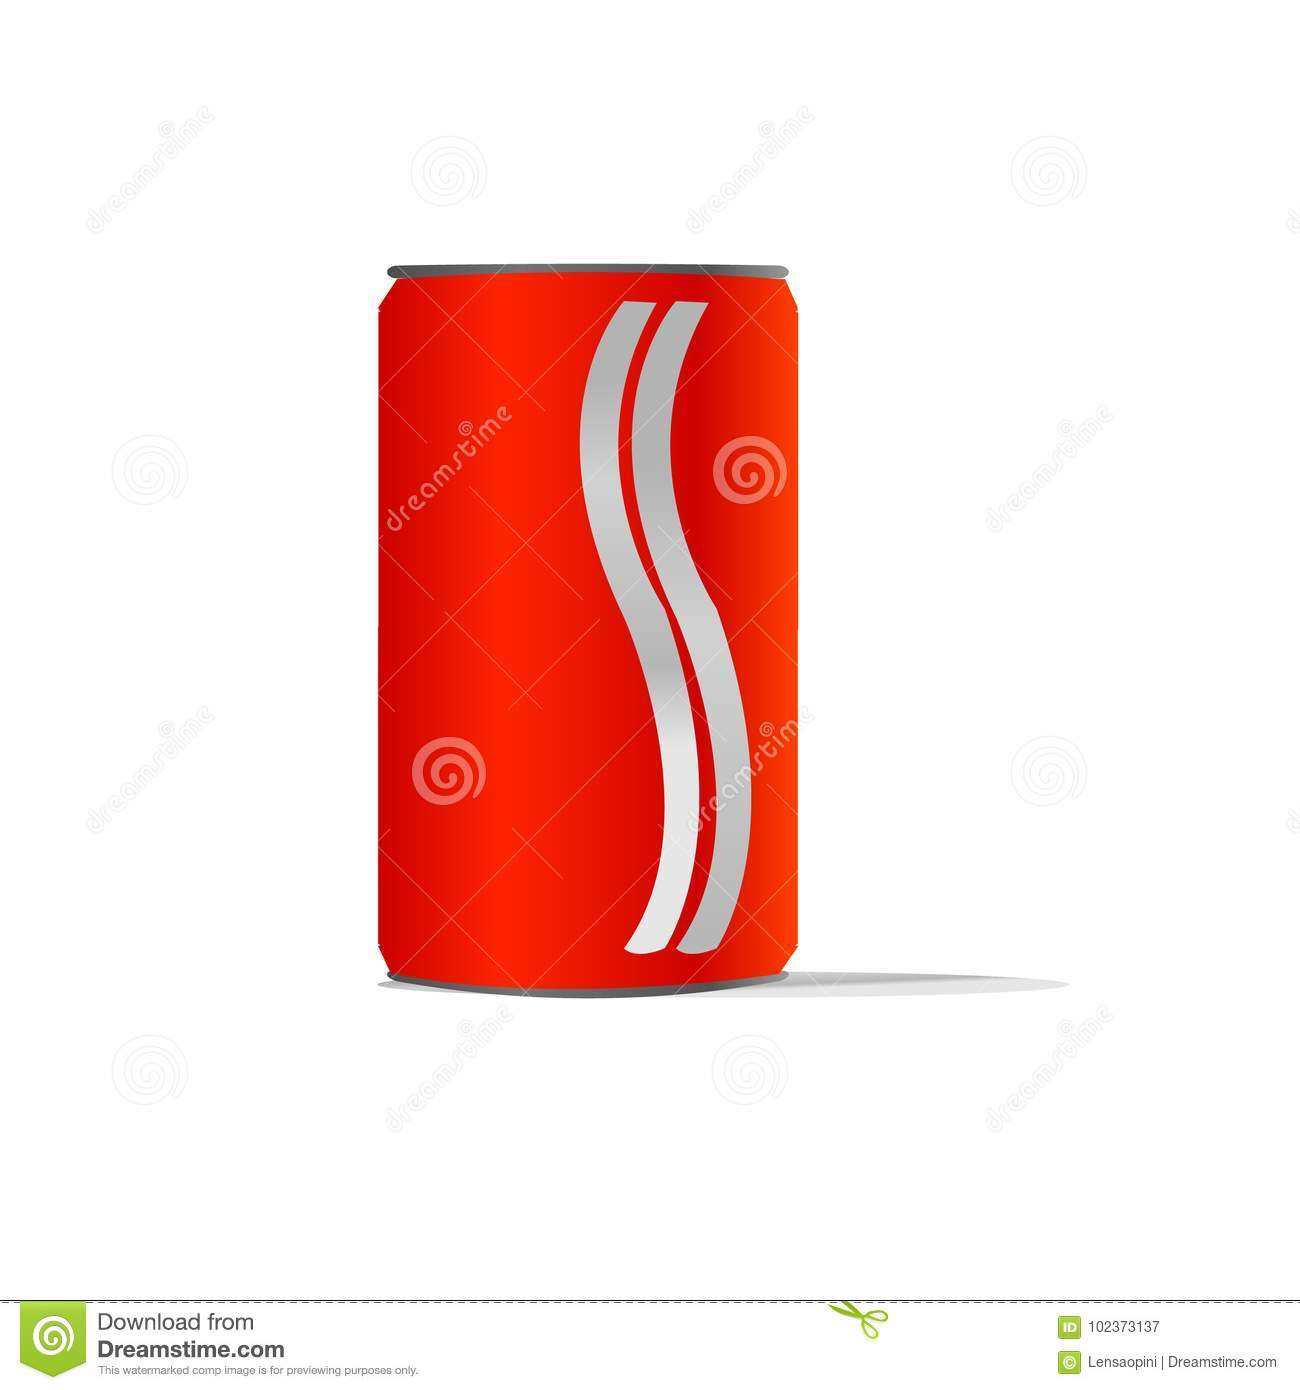 Red aluminum cans with two white line ideal for beer lager alcohol soft drink soda lemonade cola energy drink juice water